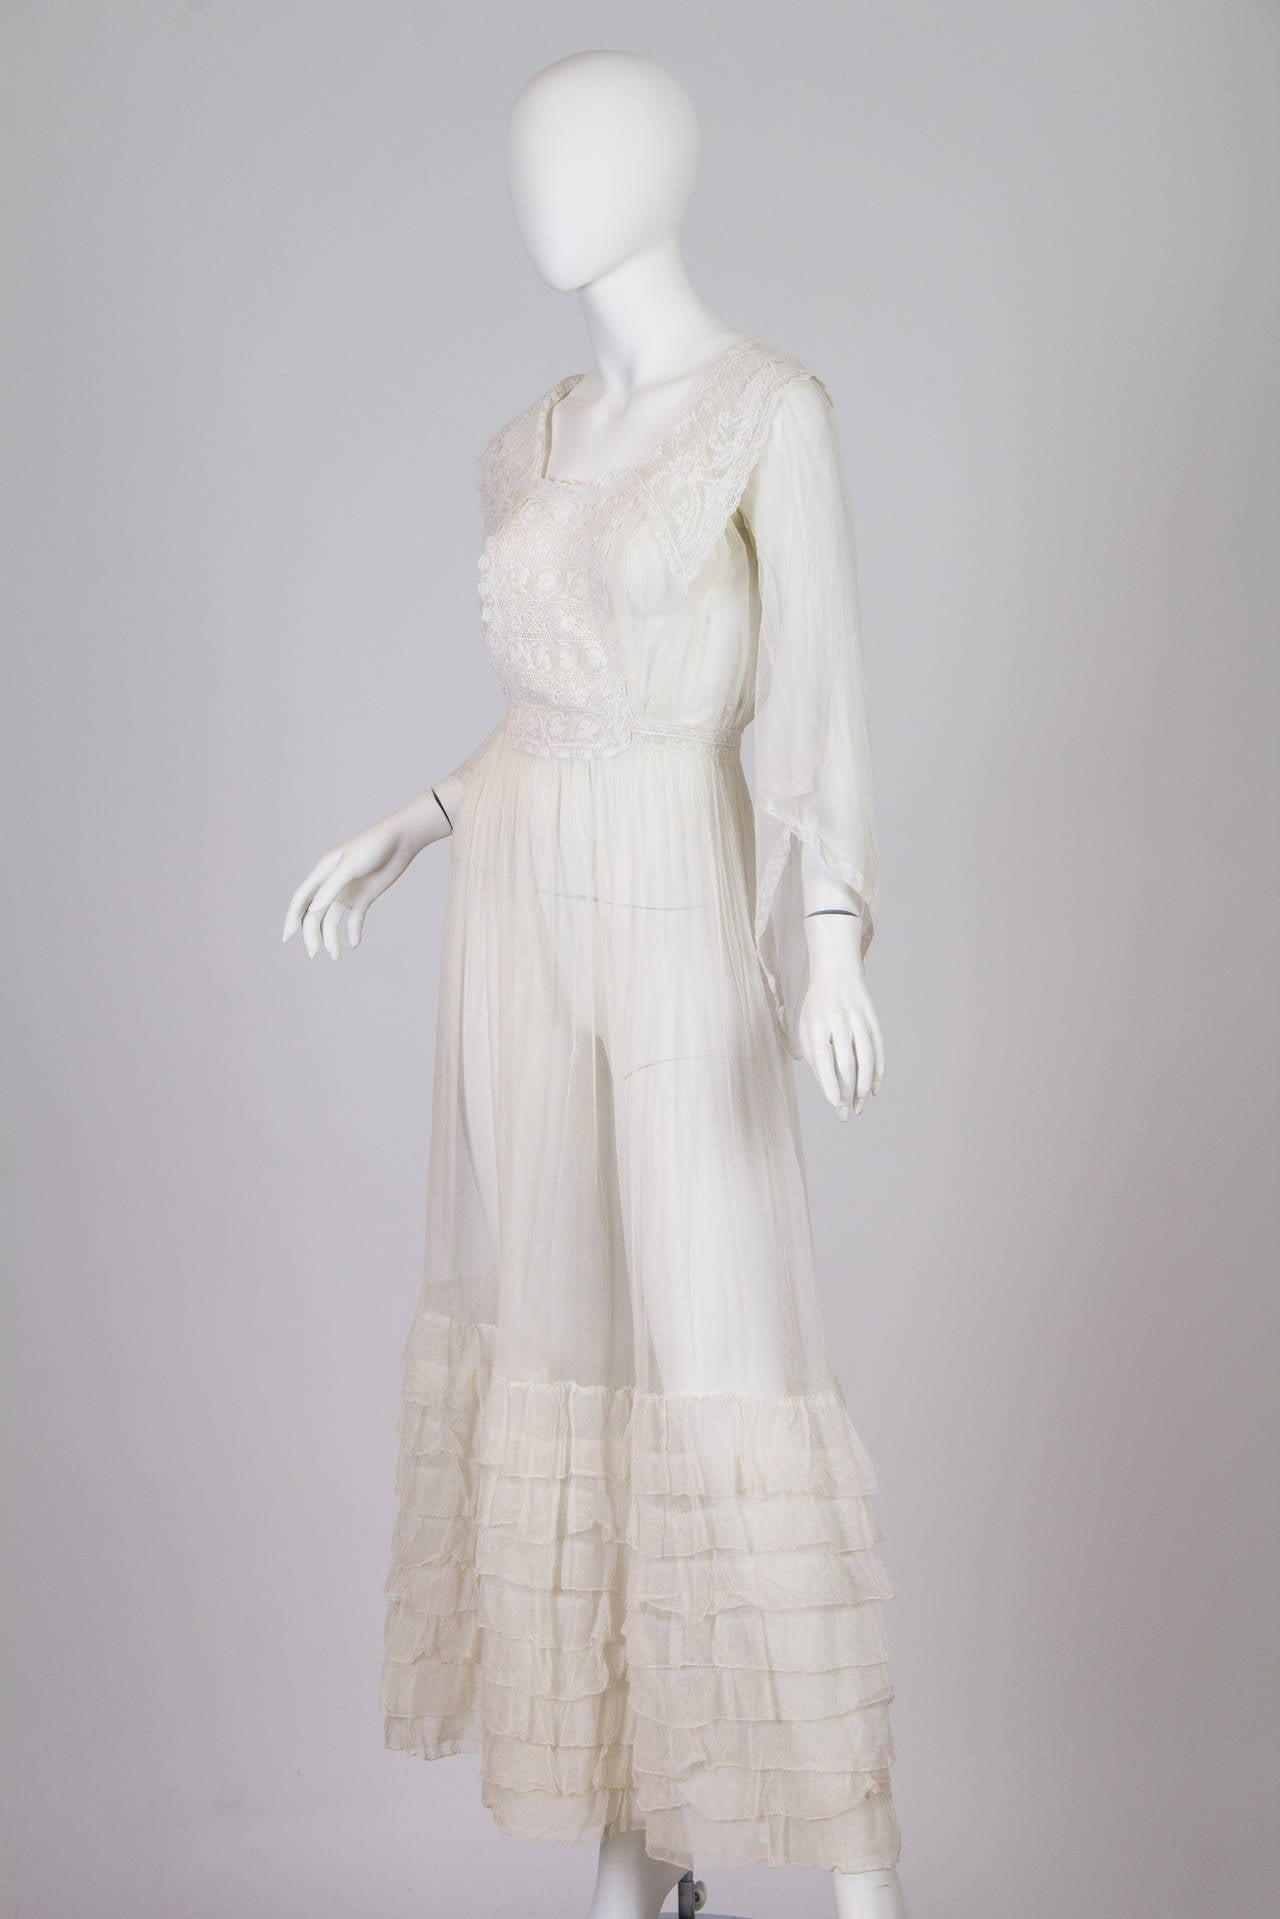 1910s Cotton Net Dress with Irish crochet and lace trim 2